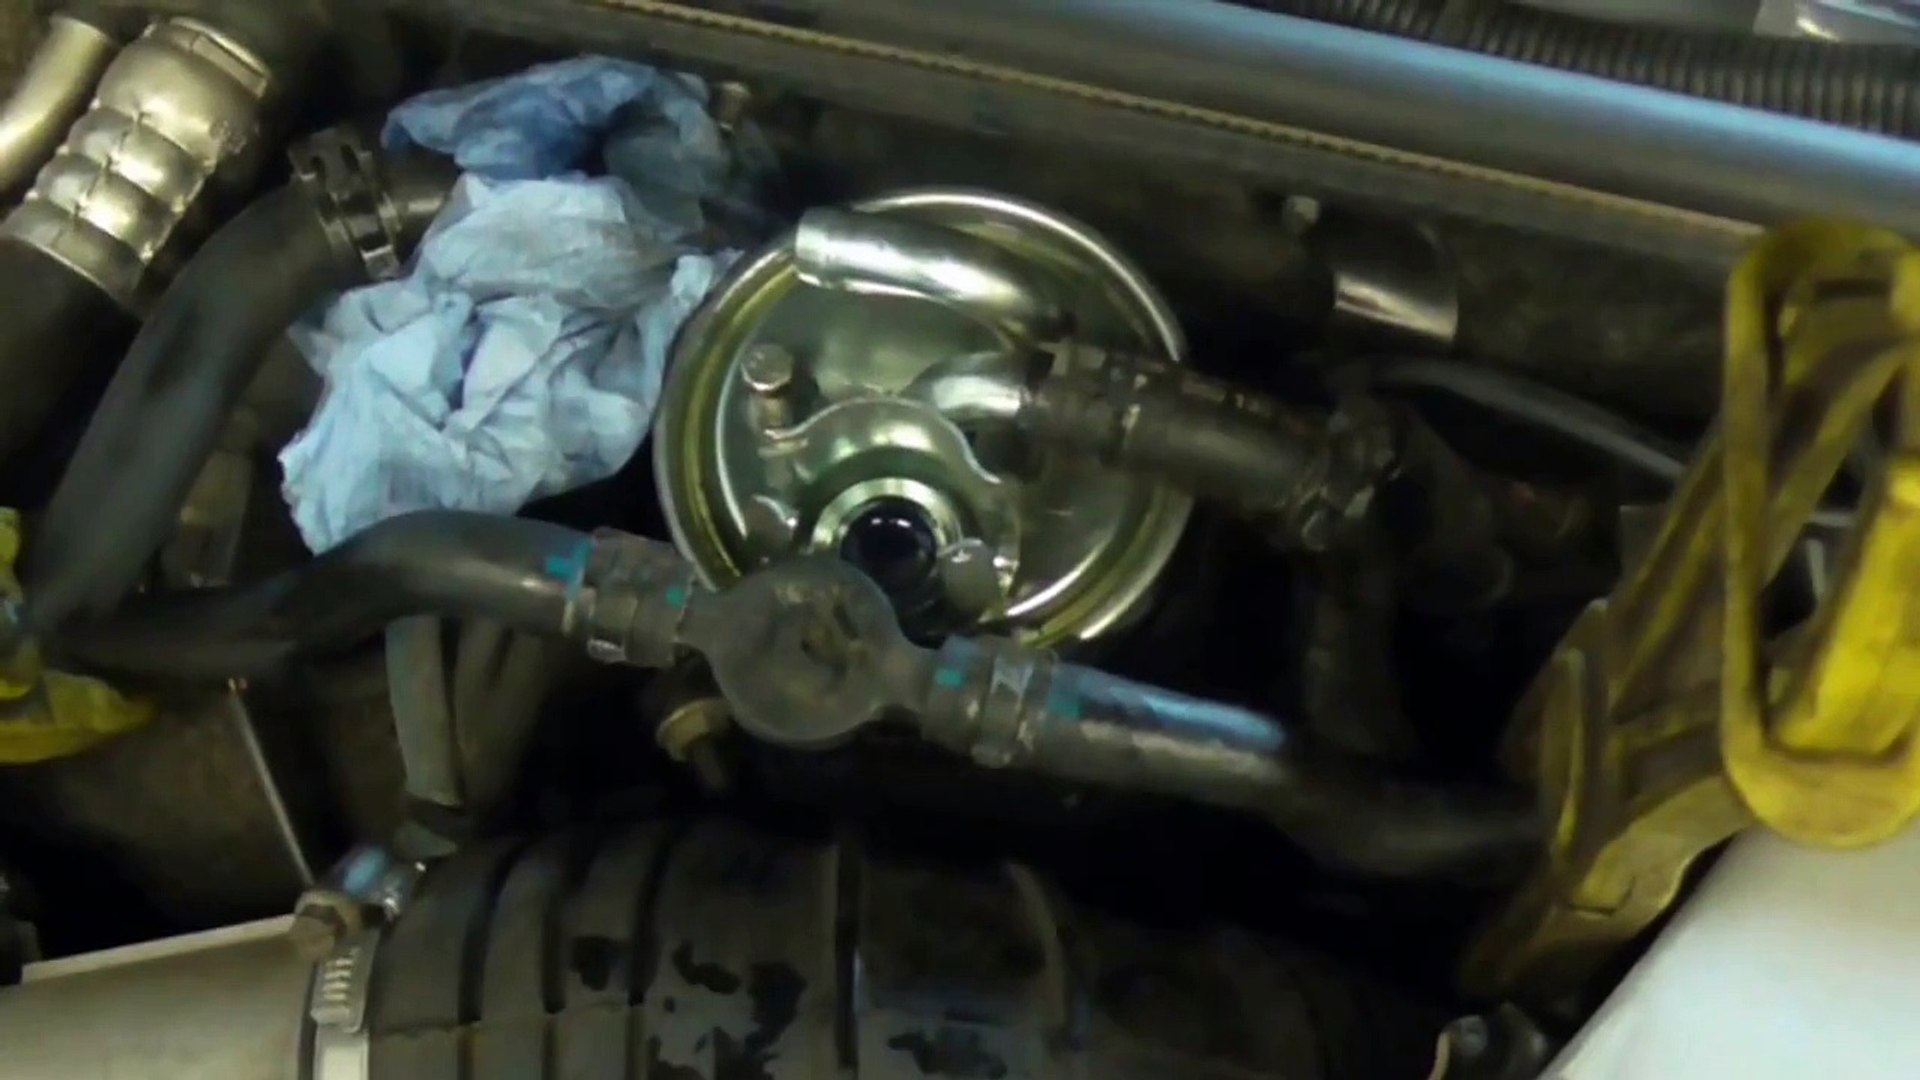 Audi A4 Kraftstofffilter Wechseln   Audi A4 Fuel Filter to change - video  Dailymotion   Audi Fuel Filter Location      Dailymotion